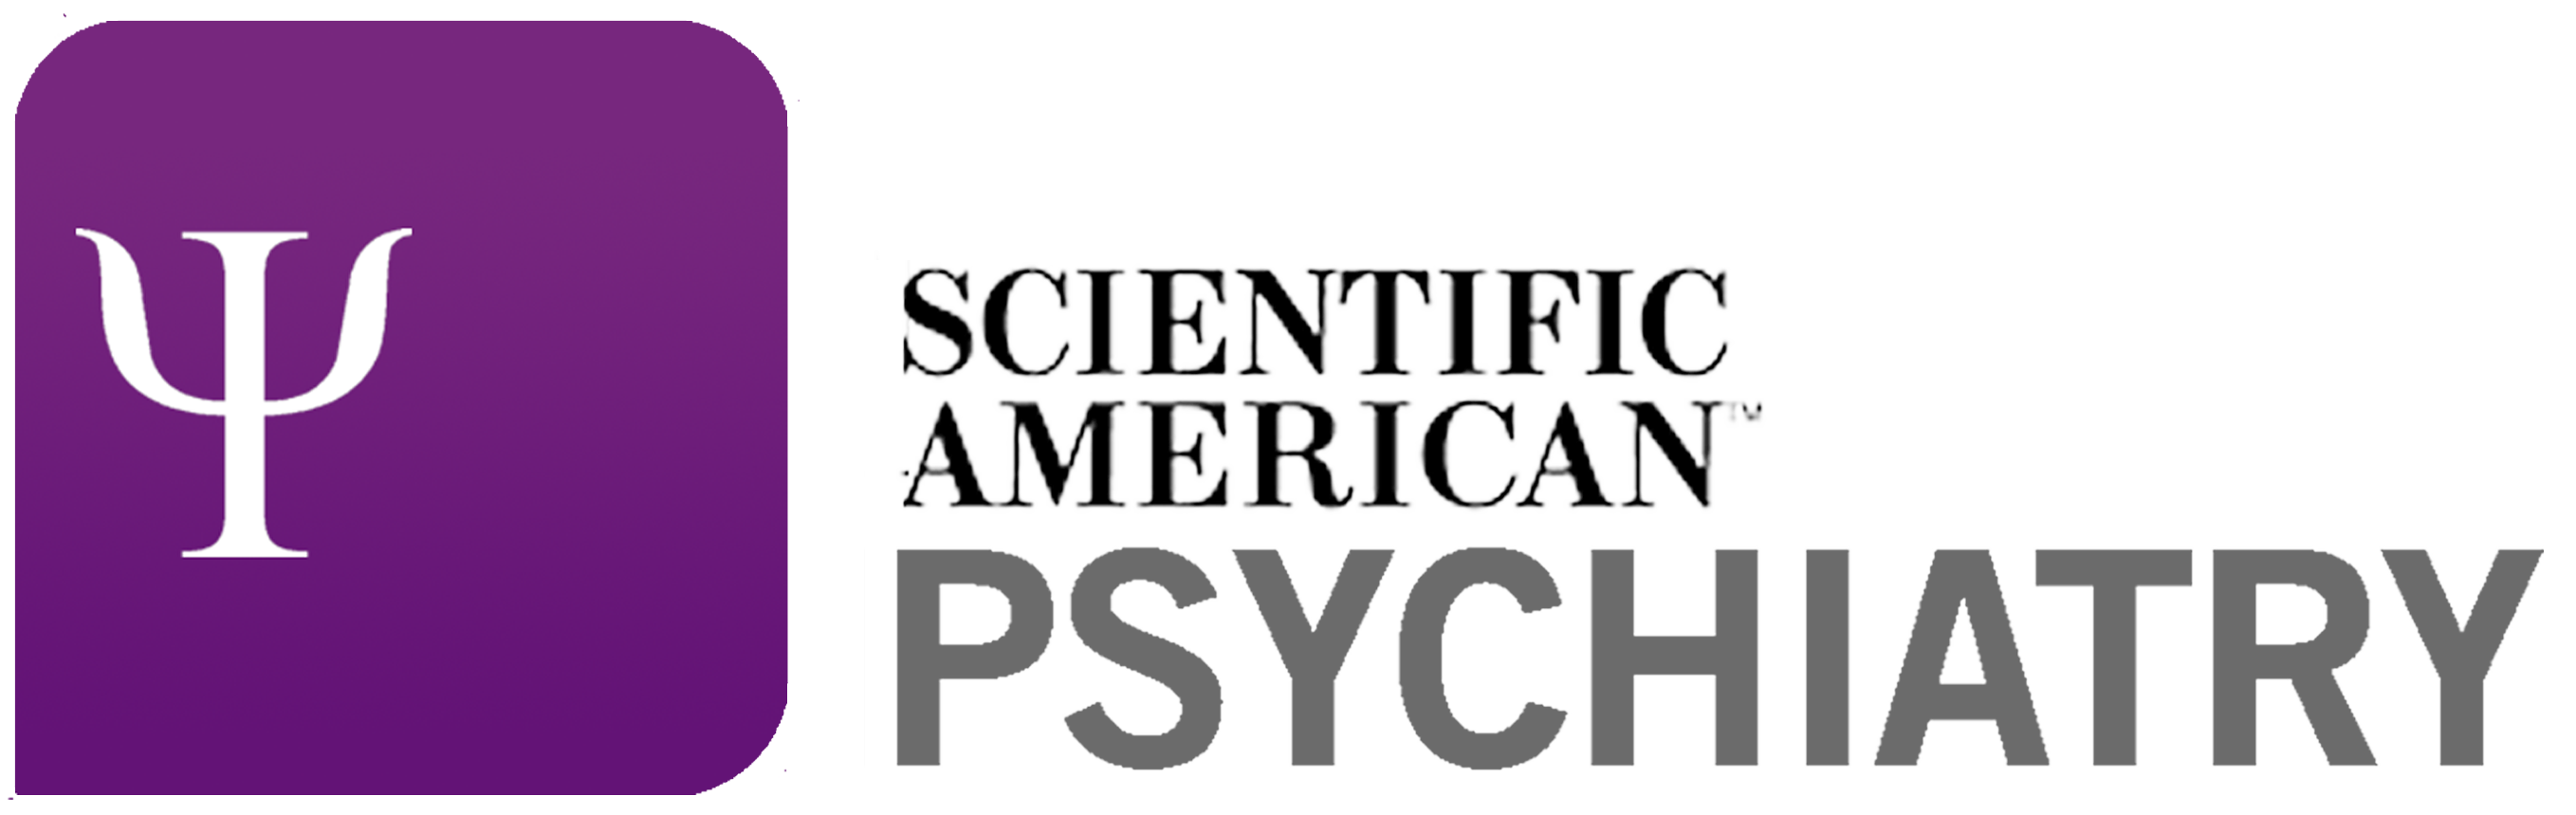 Scientific American Psychiatry Image